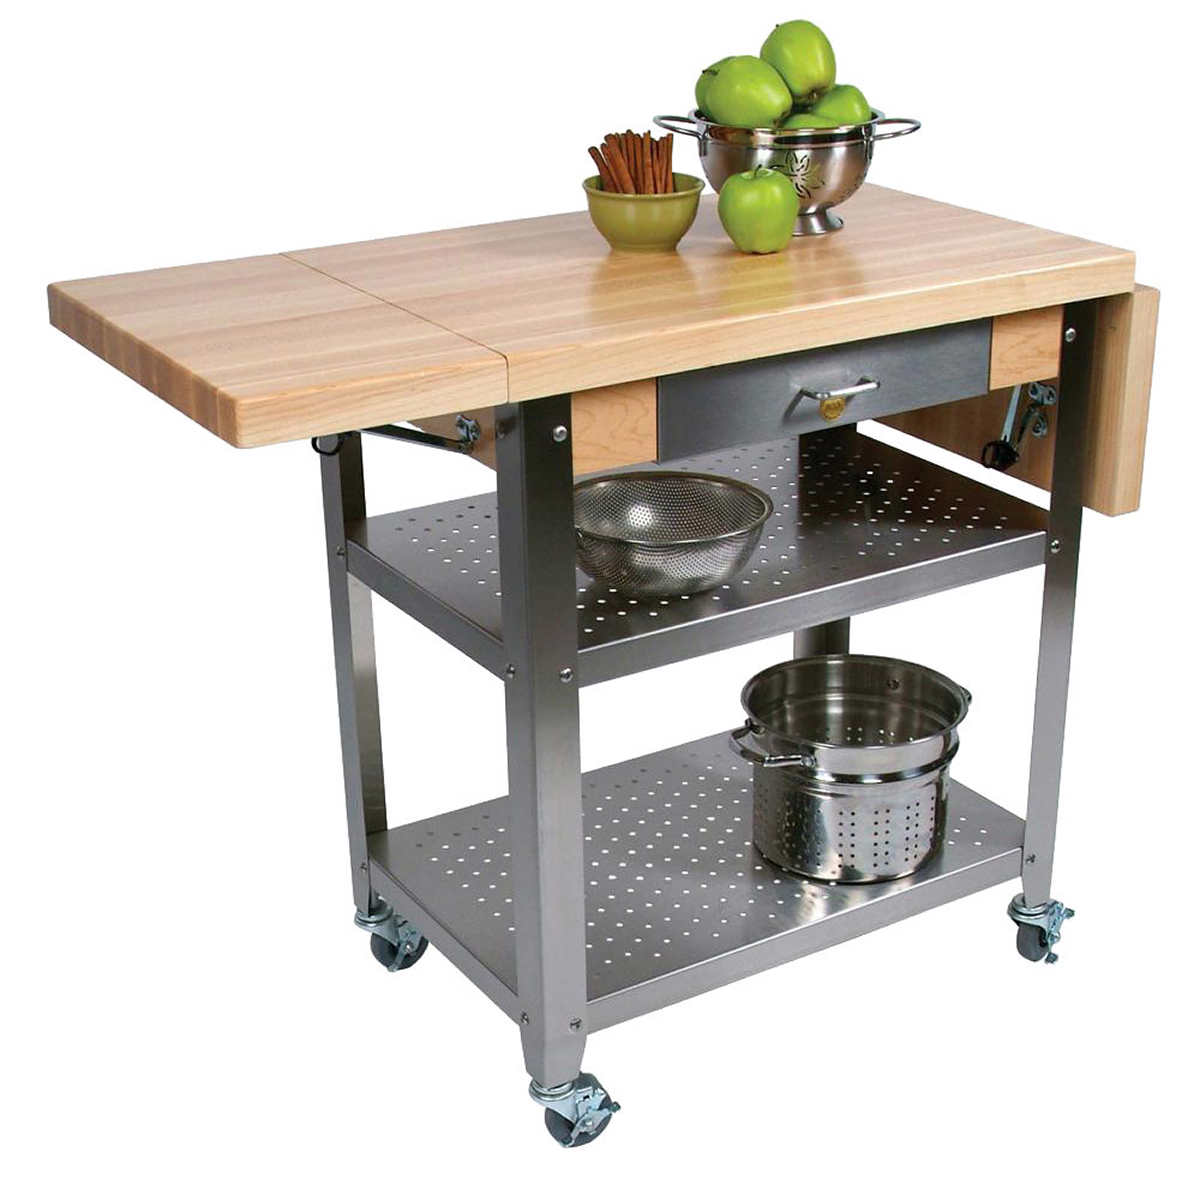 kitchen carts & pot racks | costco